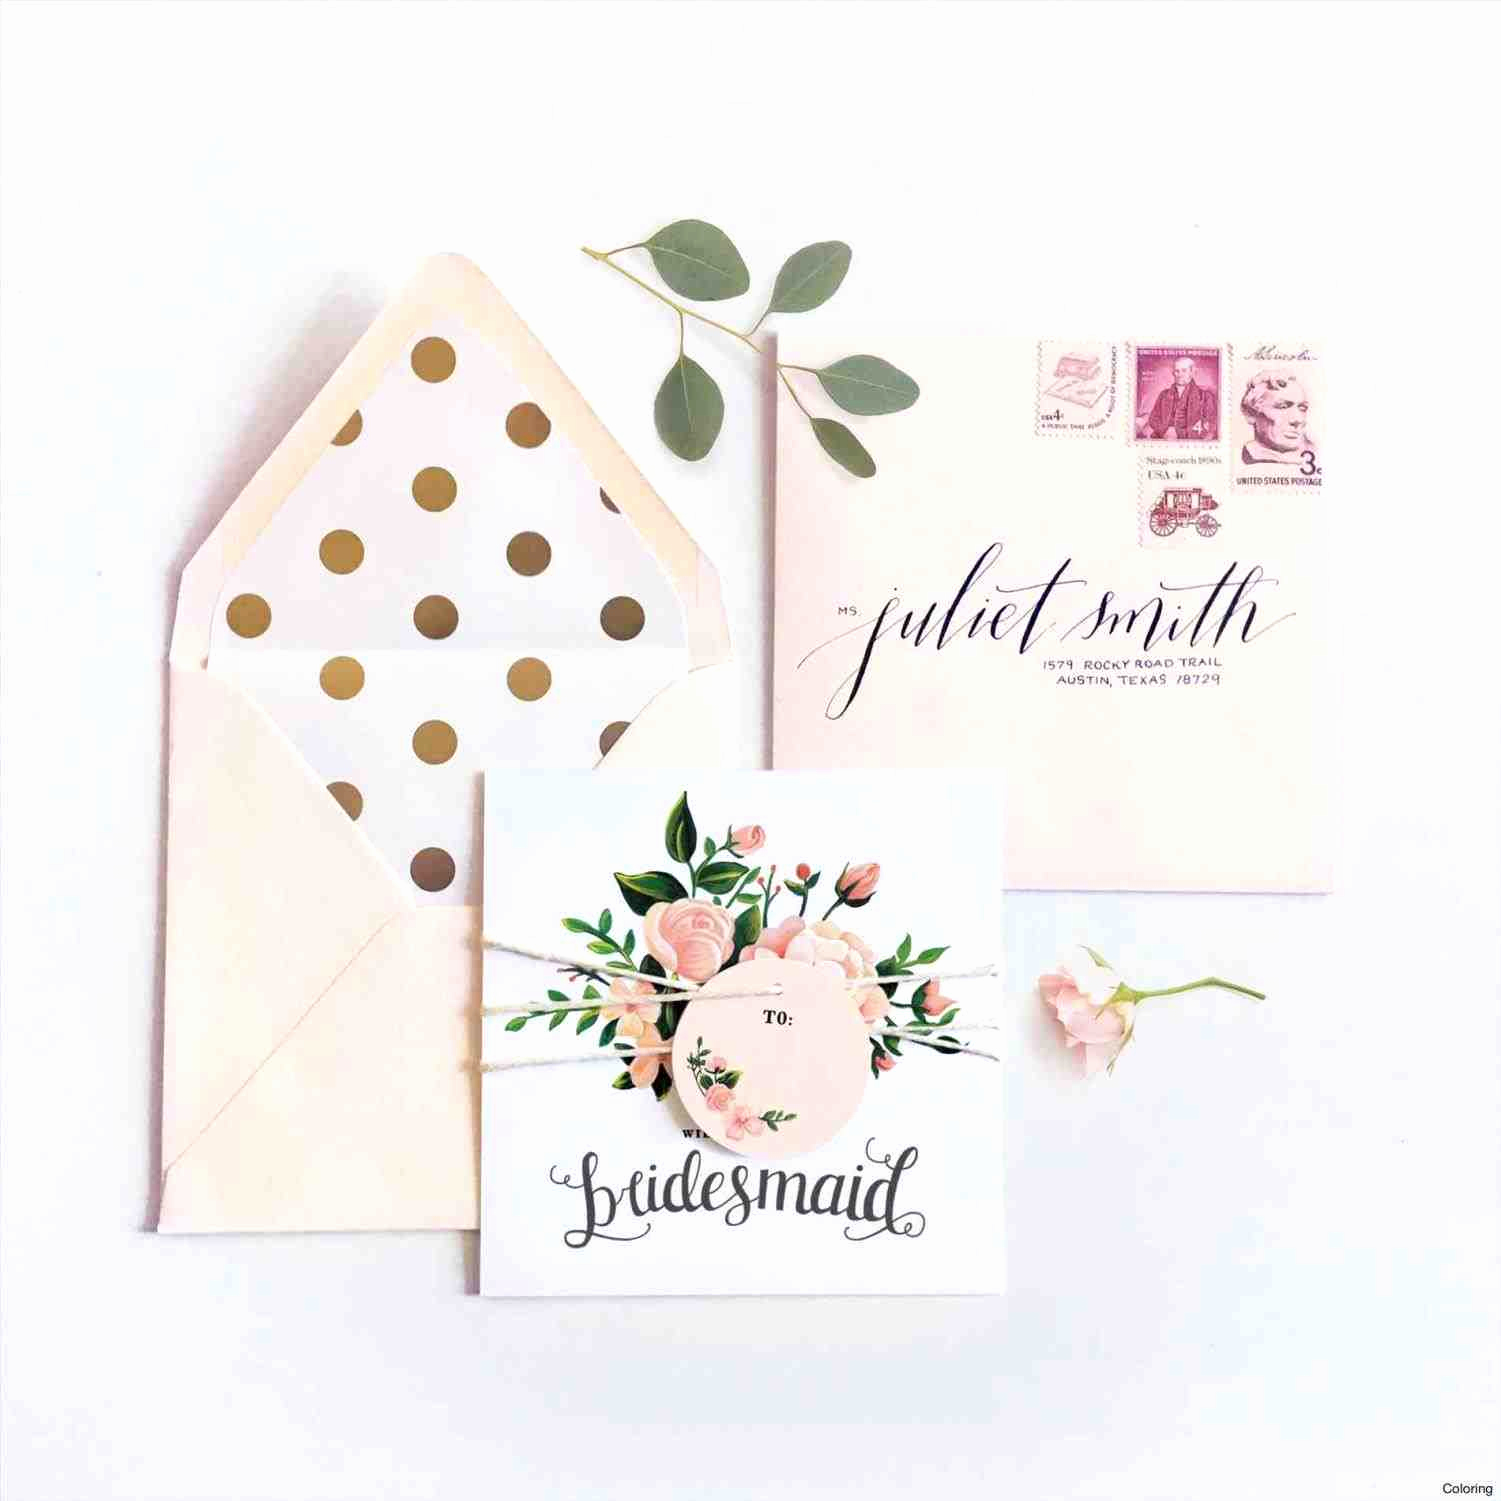 Will You Be My Bridesmaid Letter Template - Will You Be My Bridesmaid Letter Template Luxury Fancy Bridesmaid